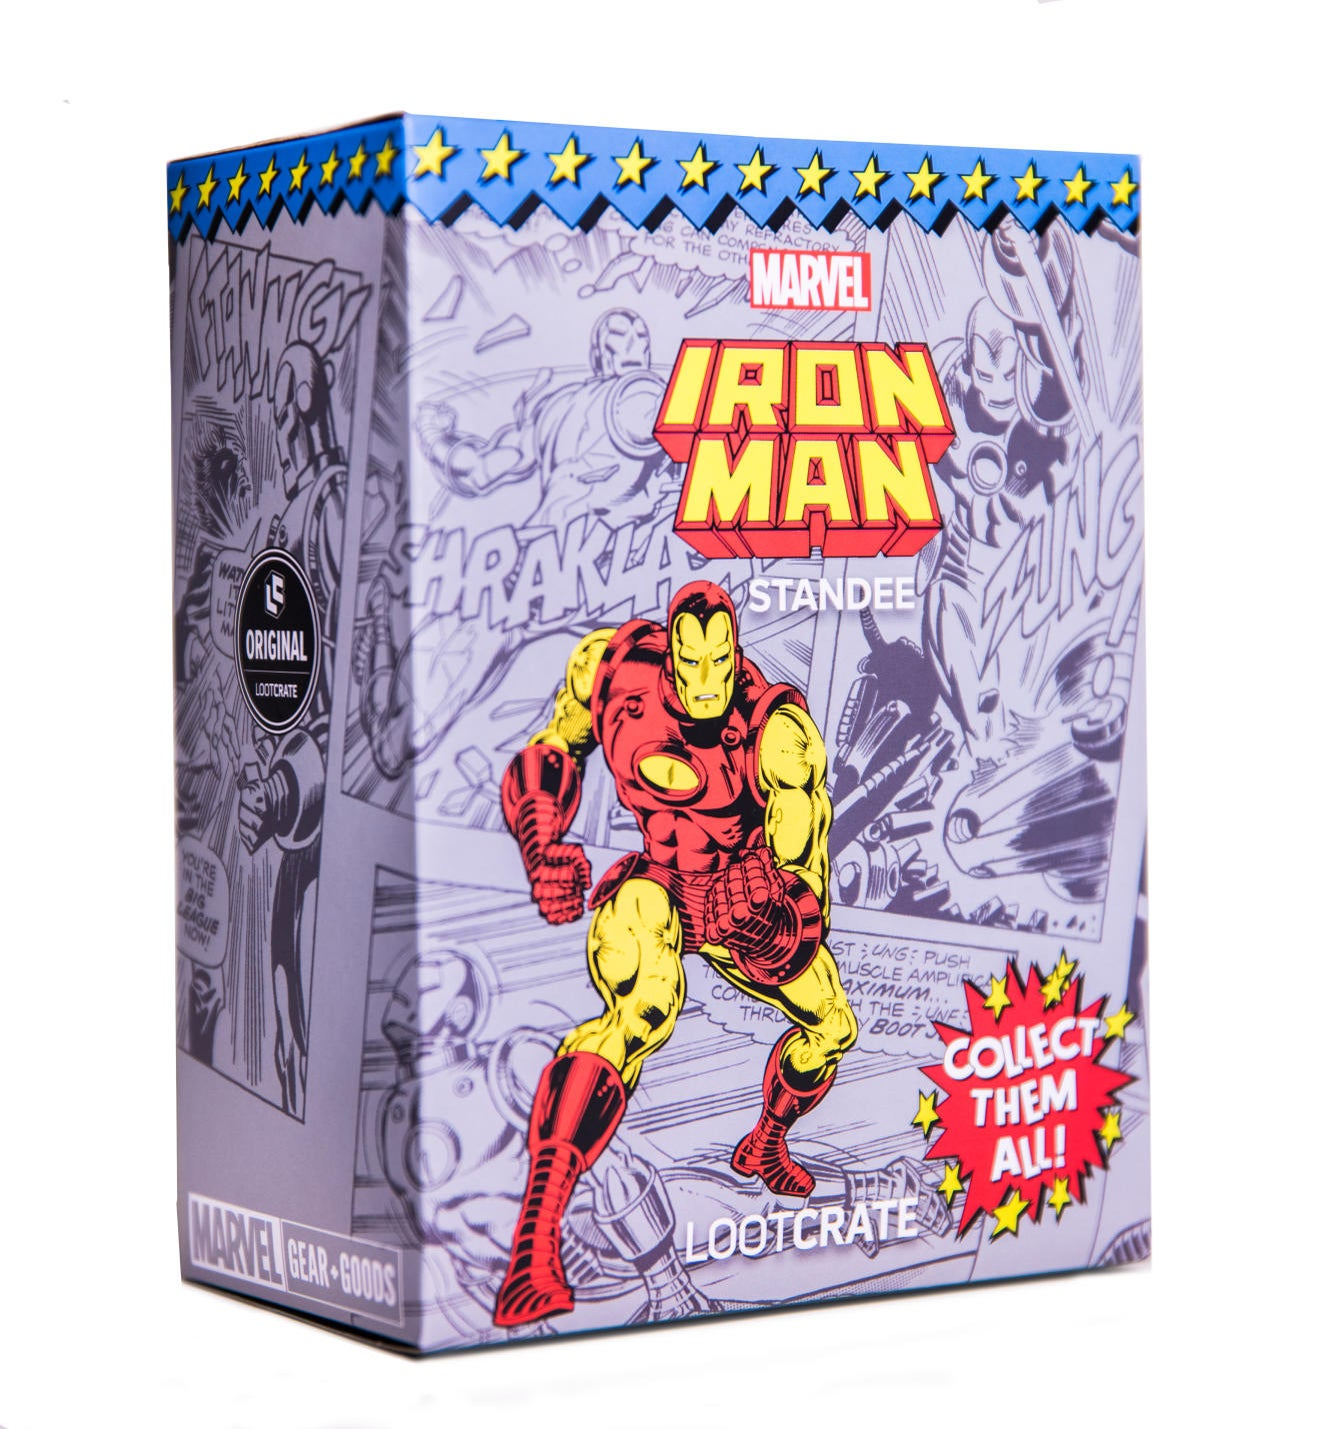 lc-aug26-iron-man-standee-box-front-right.jpg